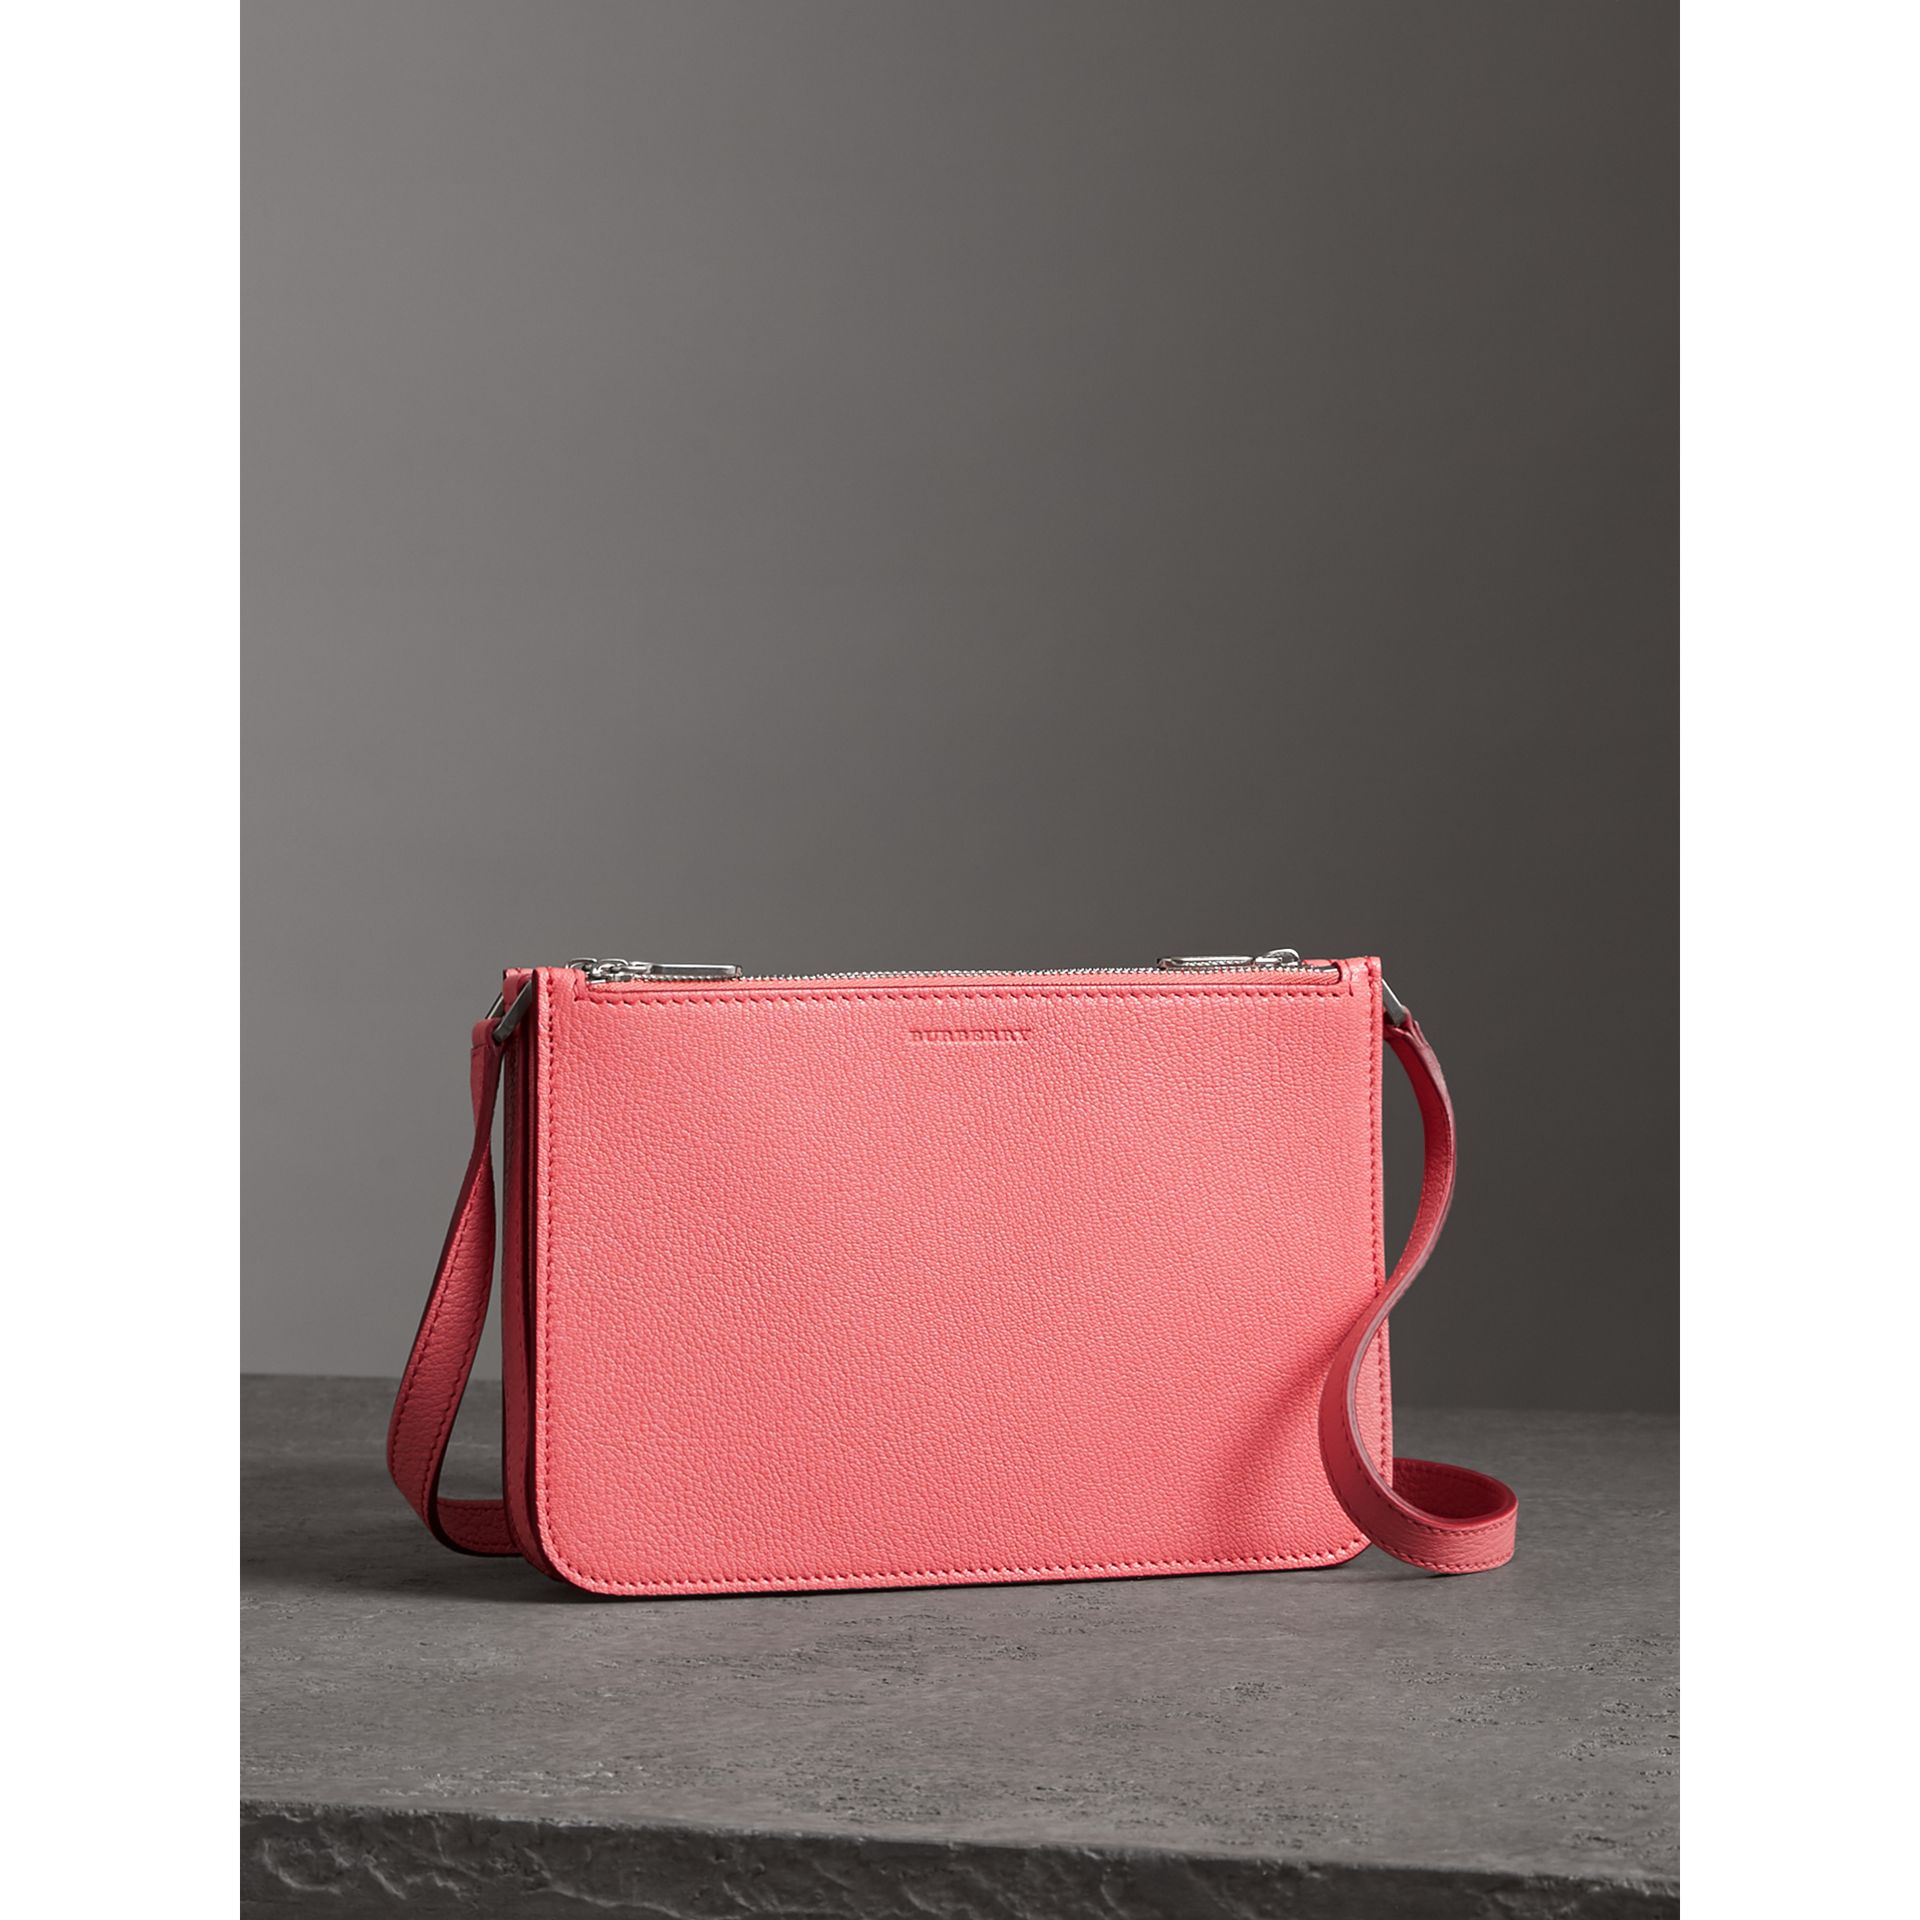 Triple Zip Grainy Leather Crossbody Bag in Bright Coral Pink - Women | Burberry United States - gallery image 6